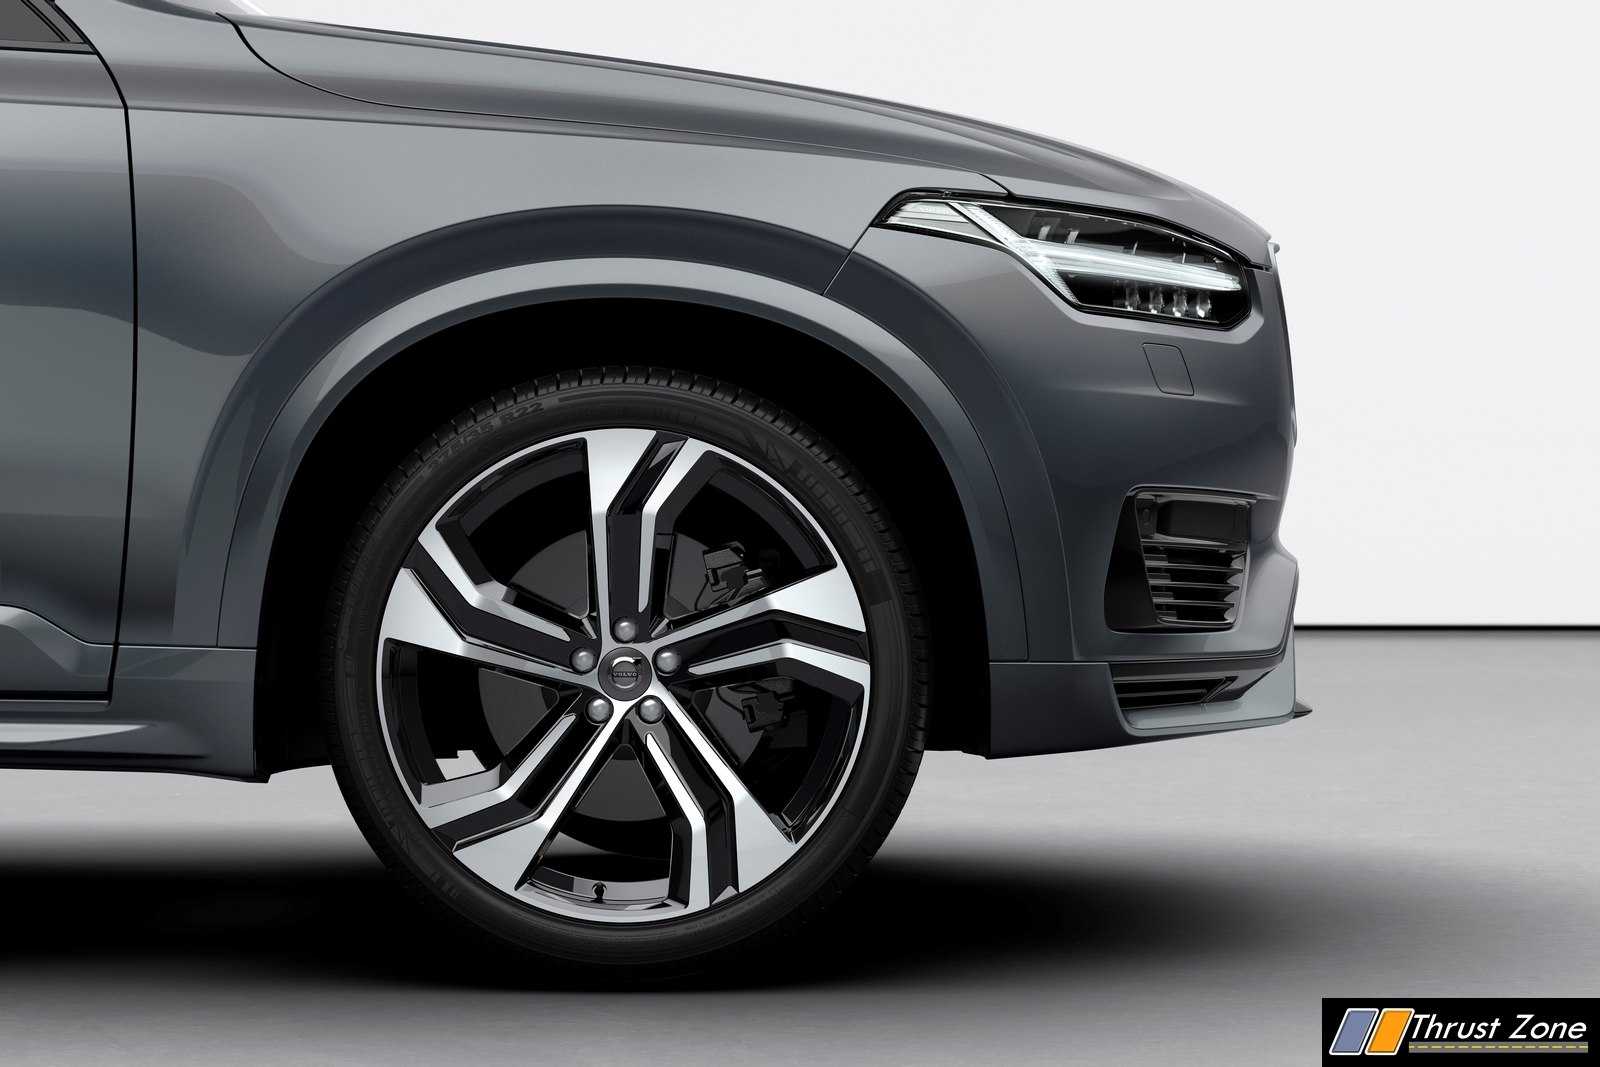 https://www.thrustzone.com/wp-content/uploads/2019/02/248306_The_refreshed_Volvo_XC90_R-Design_T8_Twin_Engine_in_Thunder_Grey.jpg